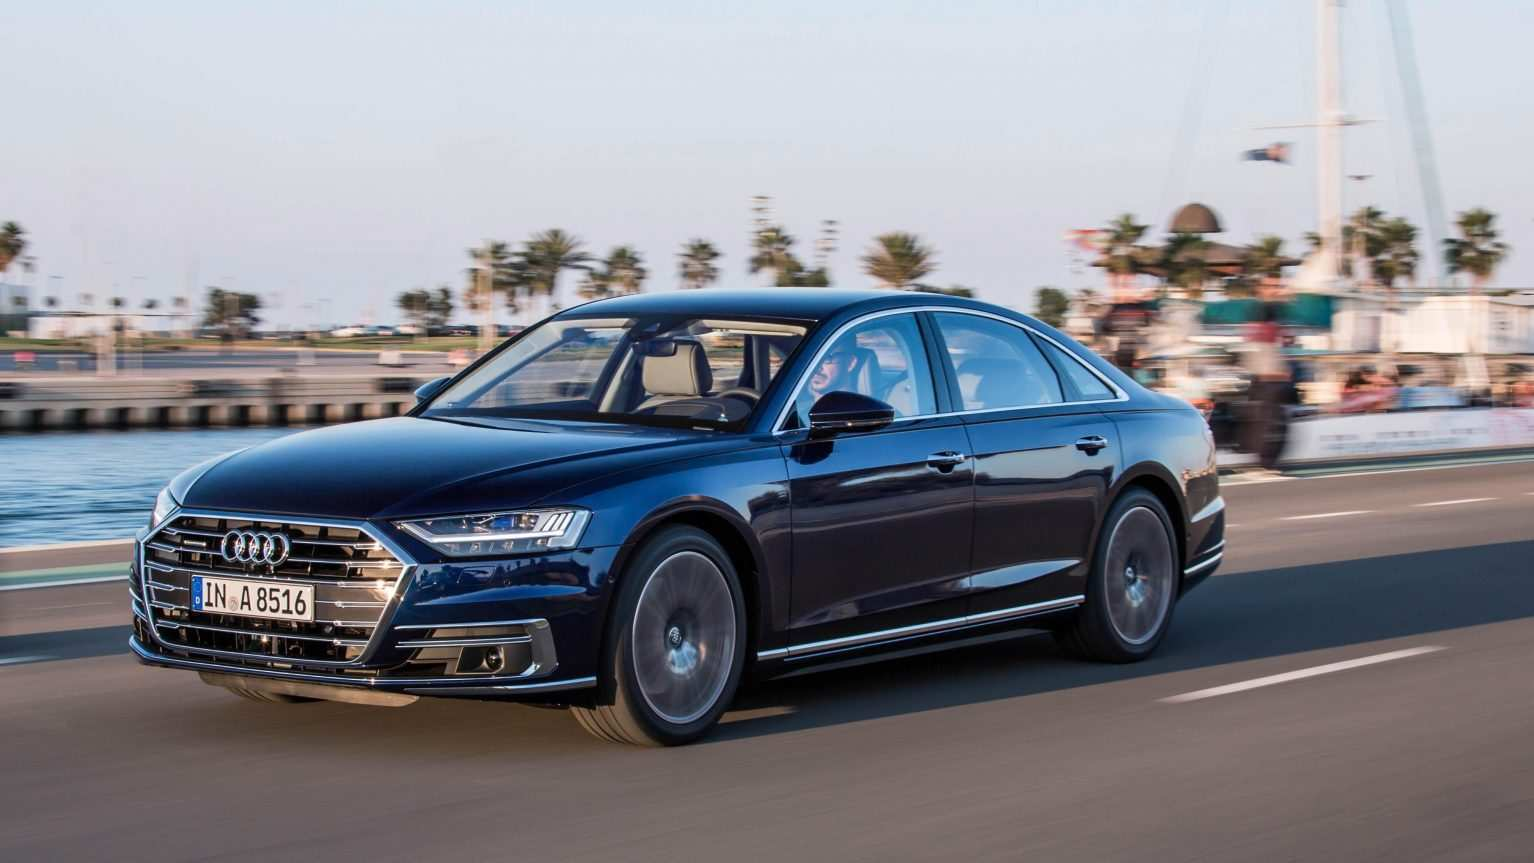 53 Best Review S8 Audi 2019 Engine Model by S8 Audi 2019 Engine